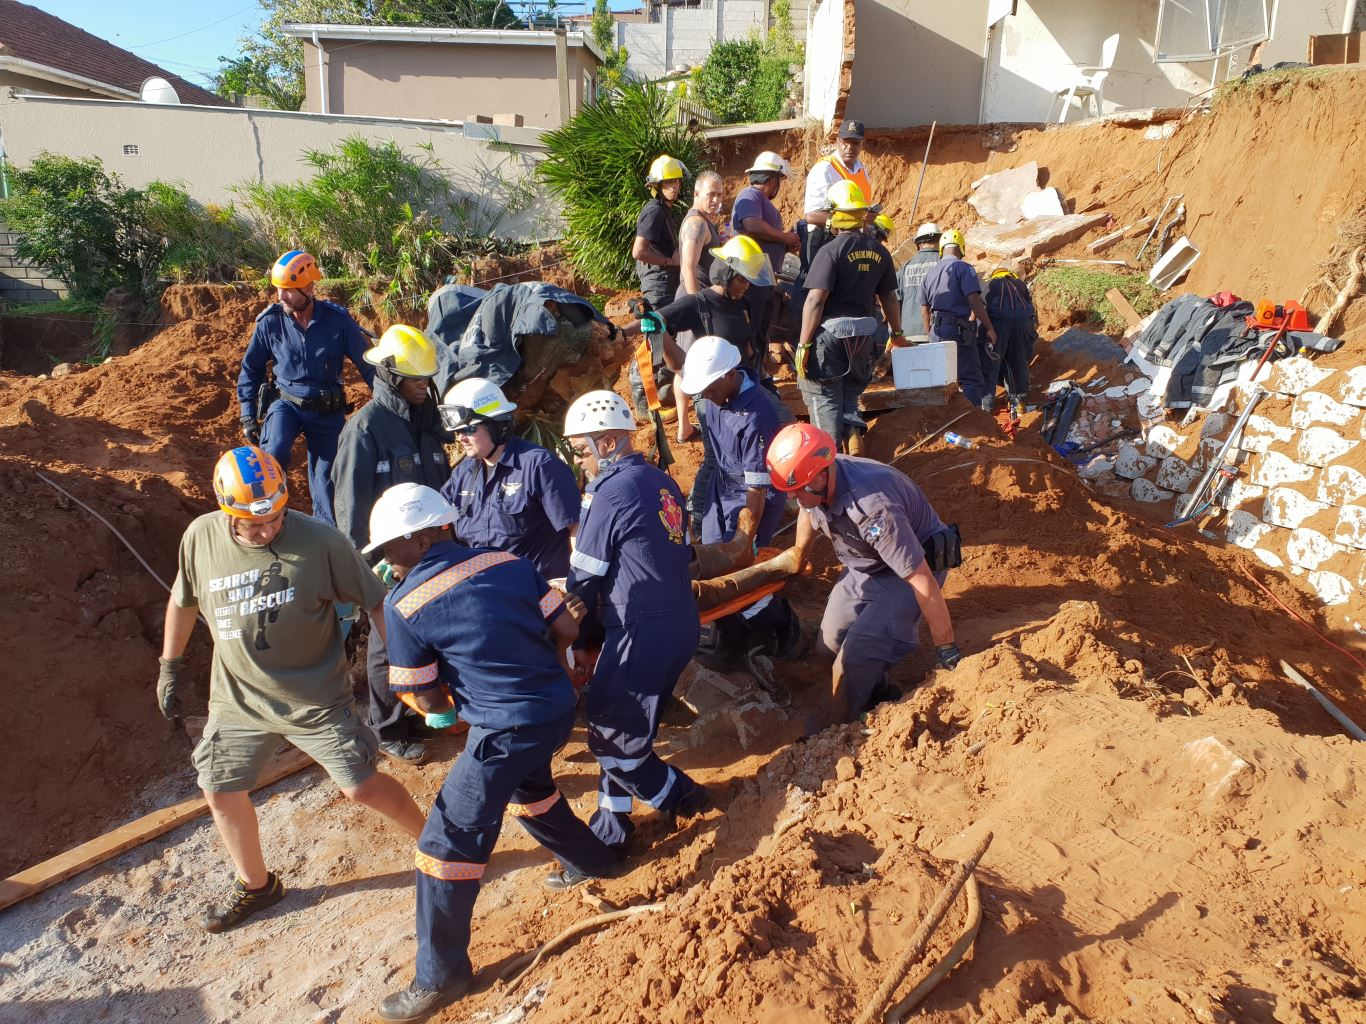 Beaumont-Rd  Worker trapped for 3 hours in Beaumont Road Beaumont Rd